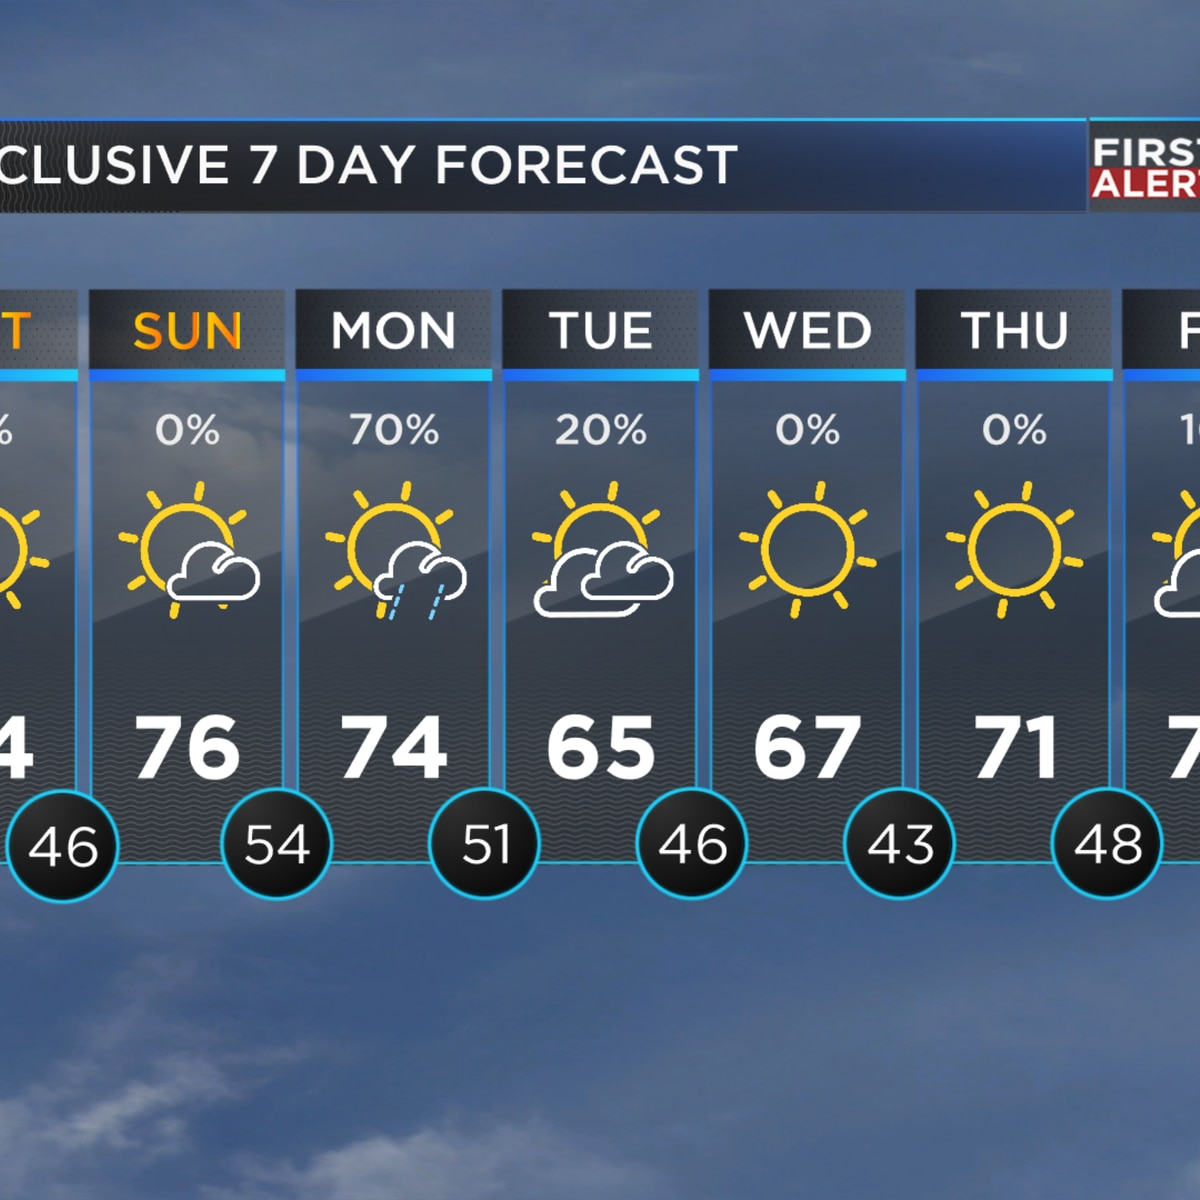 First Alert: Sunny and warm weekend